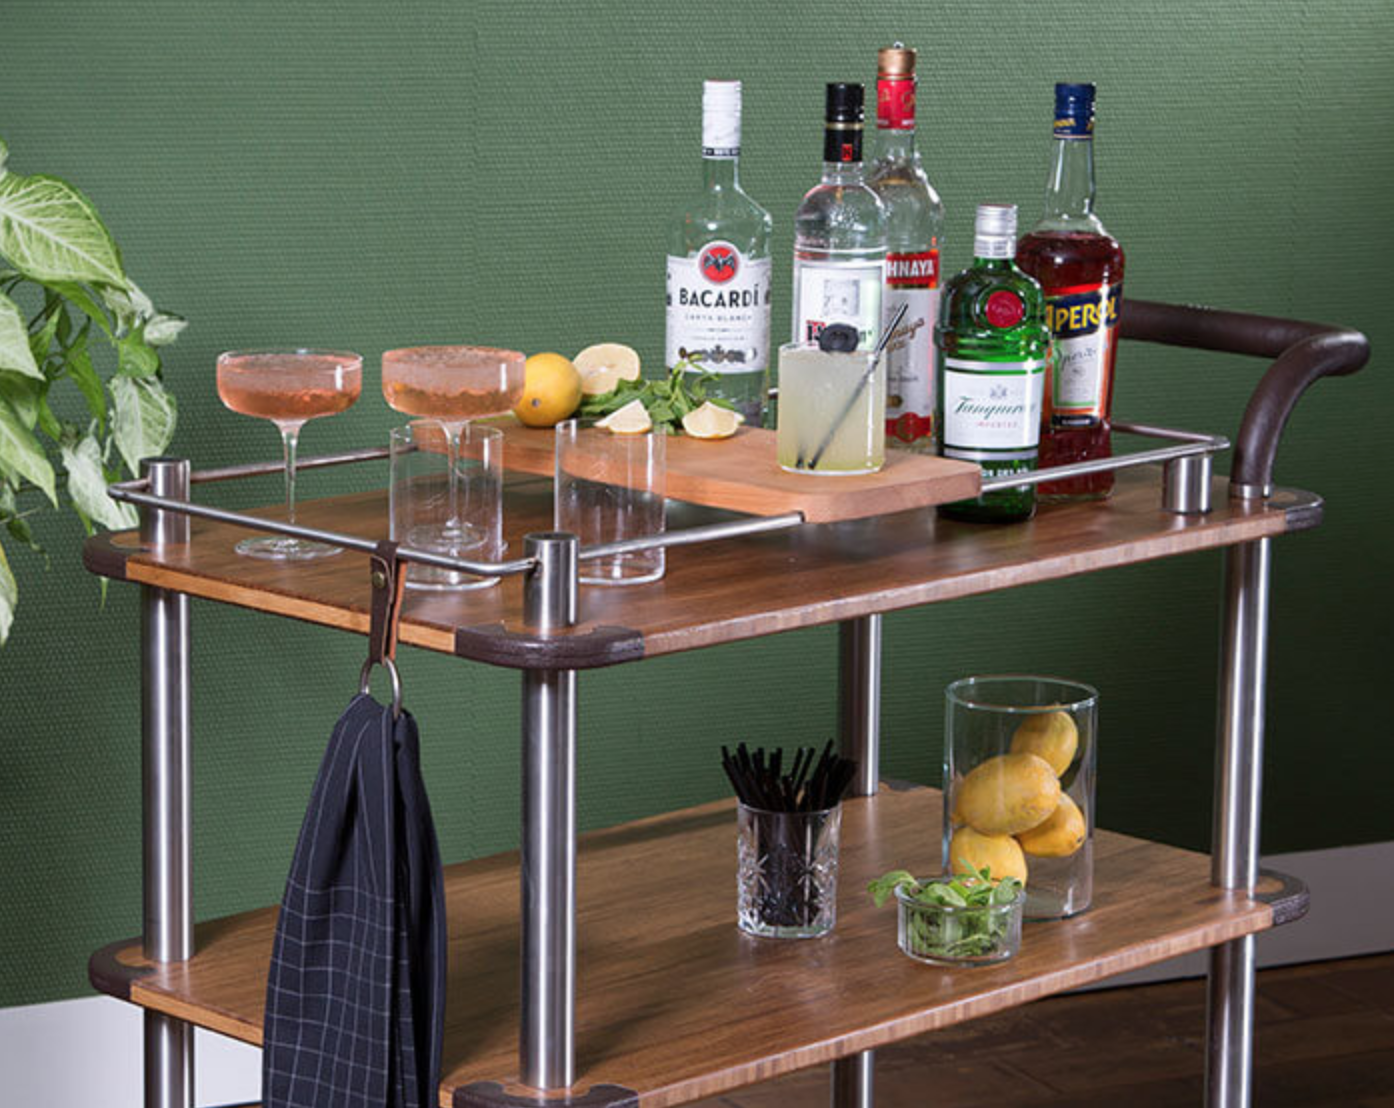 Get Creative with Your Tableside Service